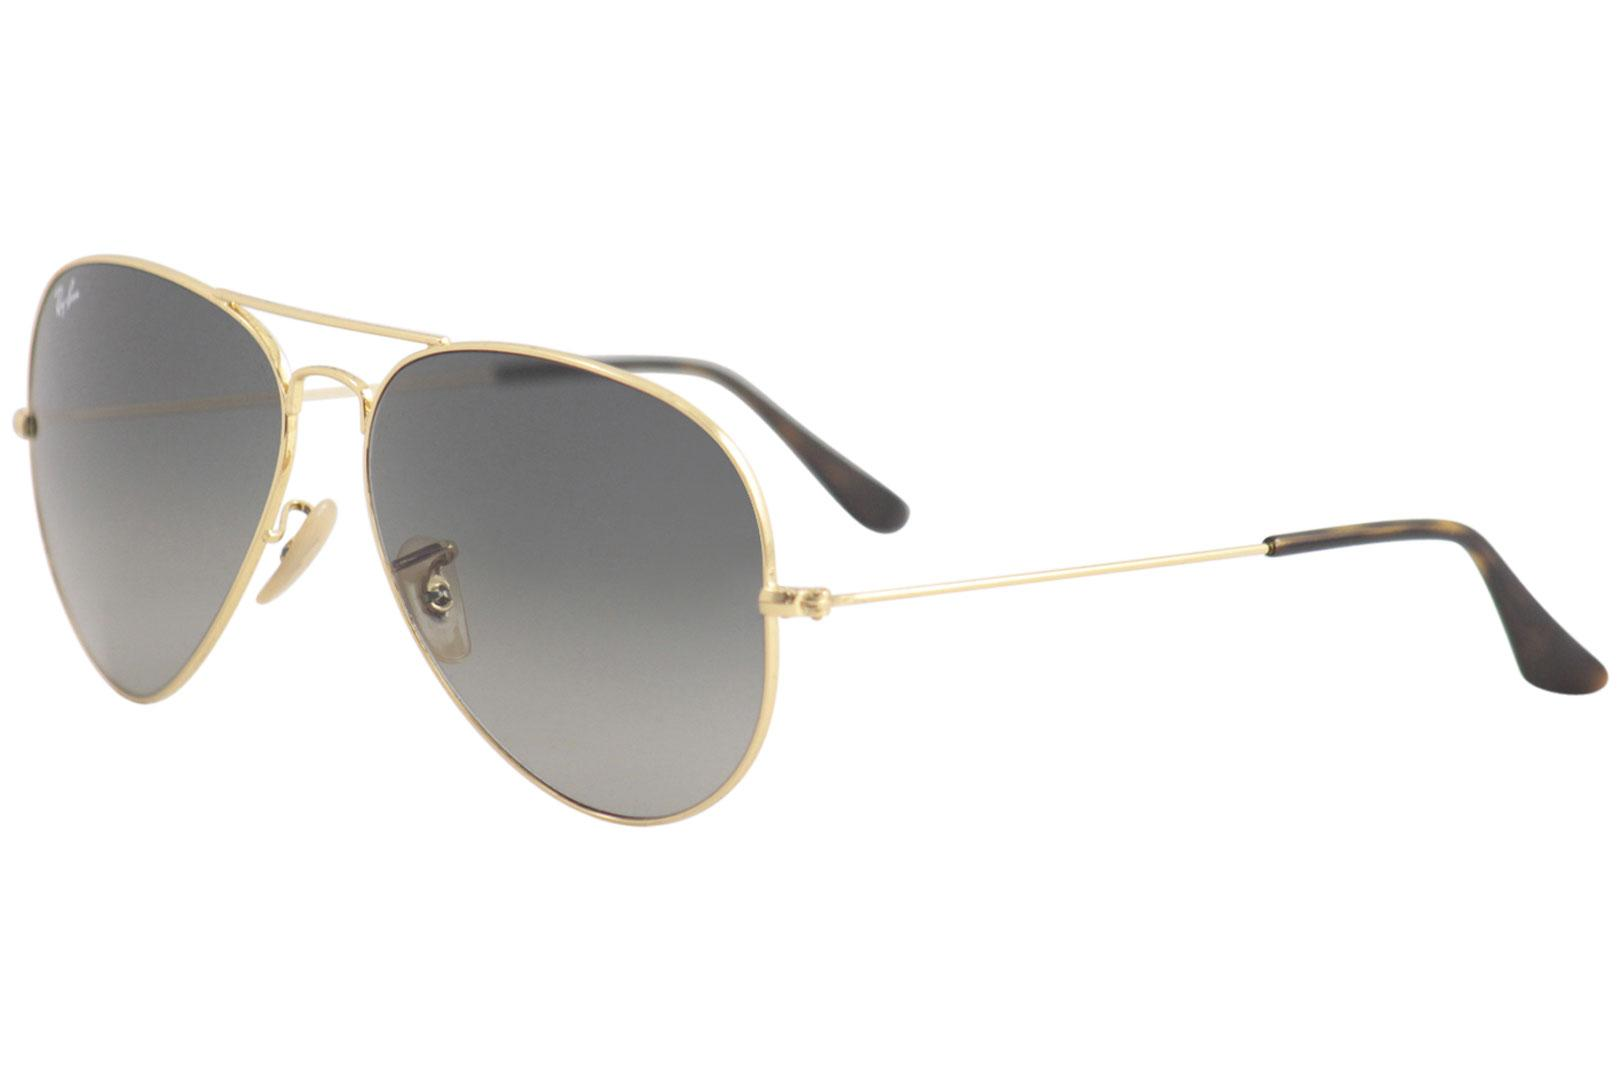 138fd28d86 Ray Ban RB3025 RB 3025 181 71 Gold Grey Gradient Aviator RayBan ...